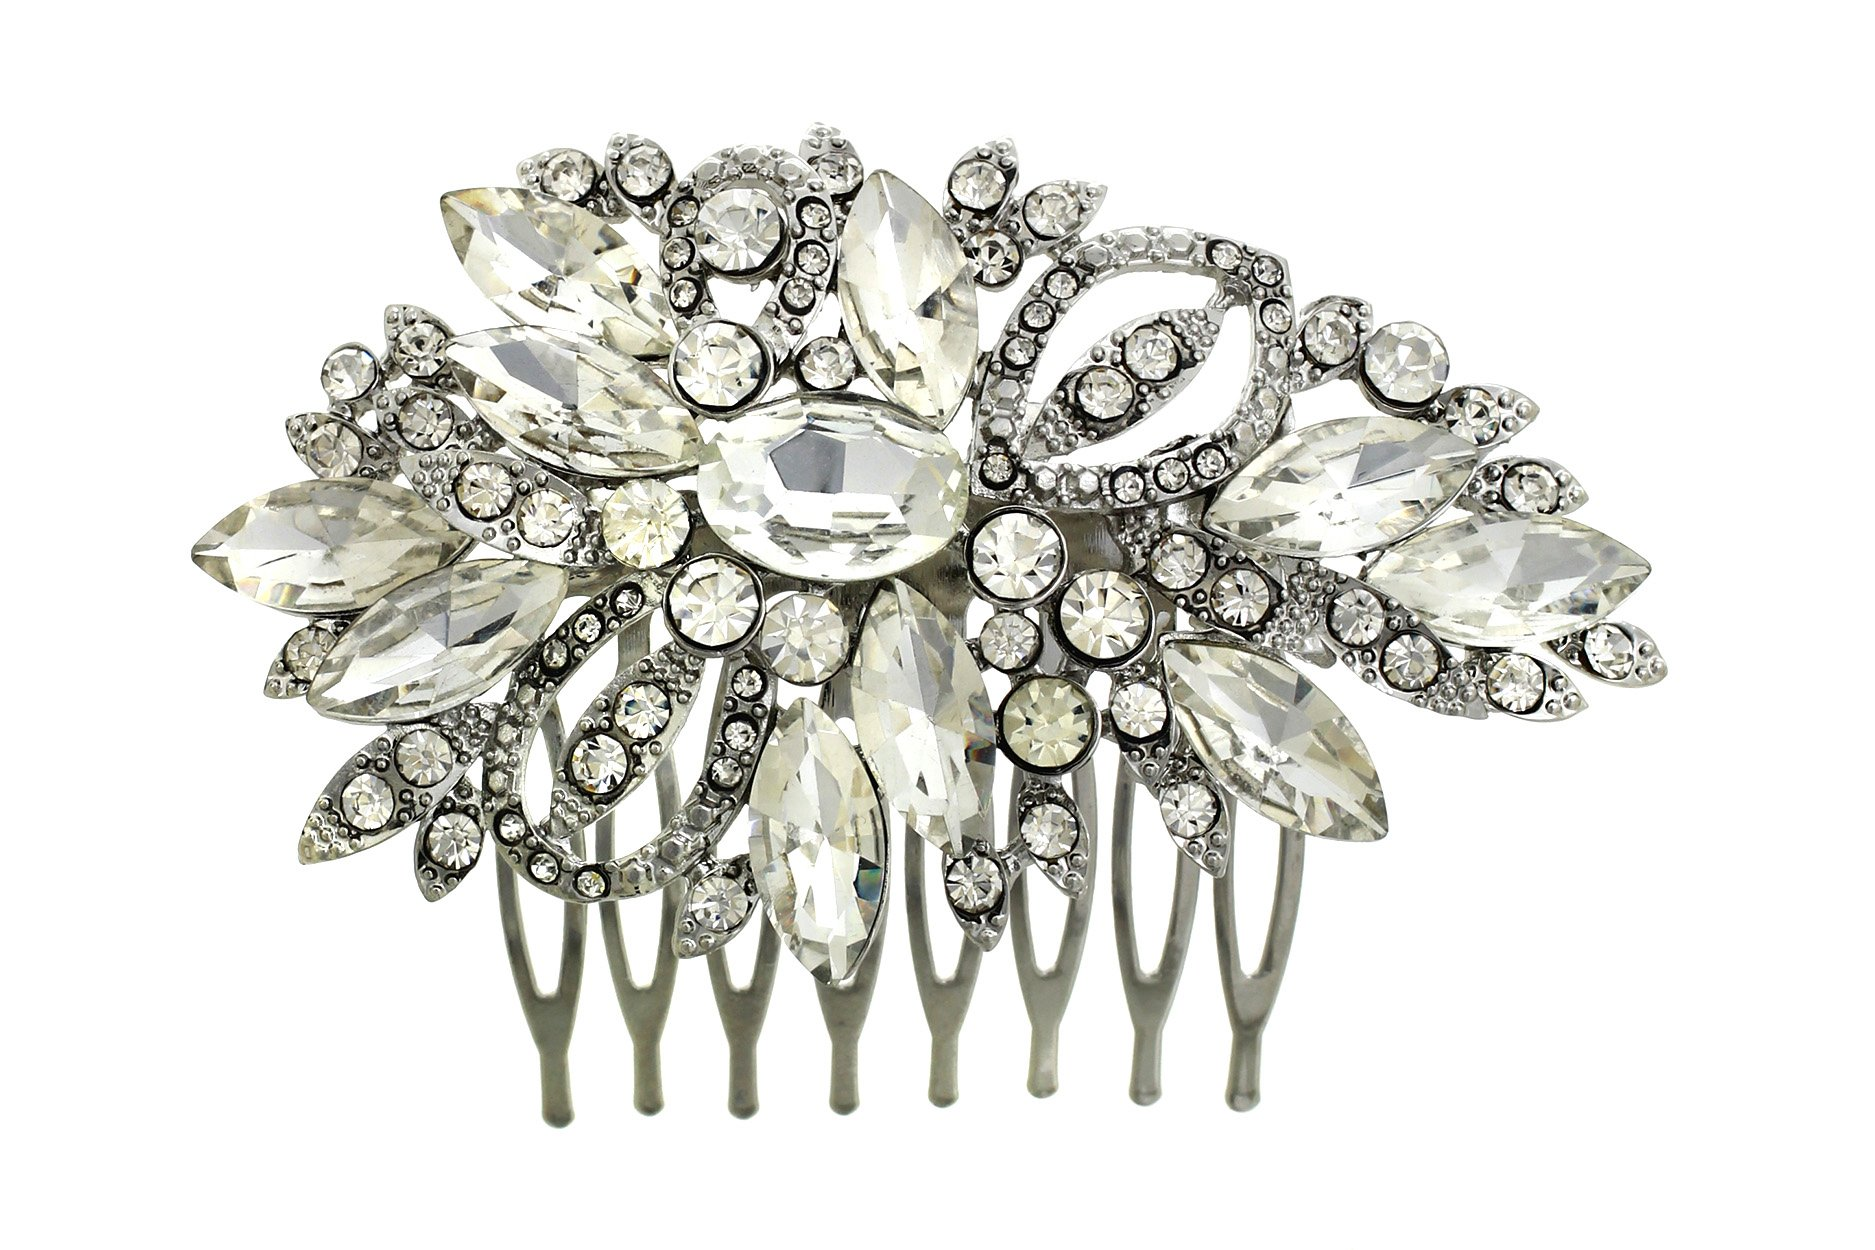 Rosemarie Collections Women's Bridal Headpiece Silver Tone Glass Crystal Hair Comb